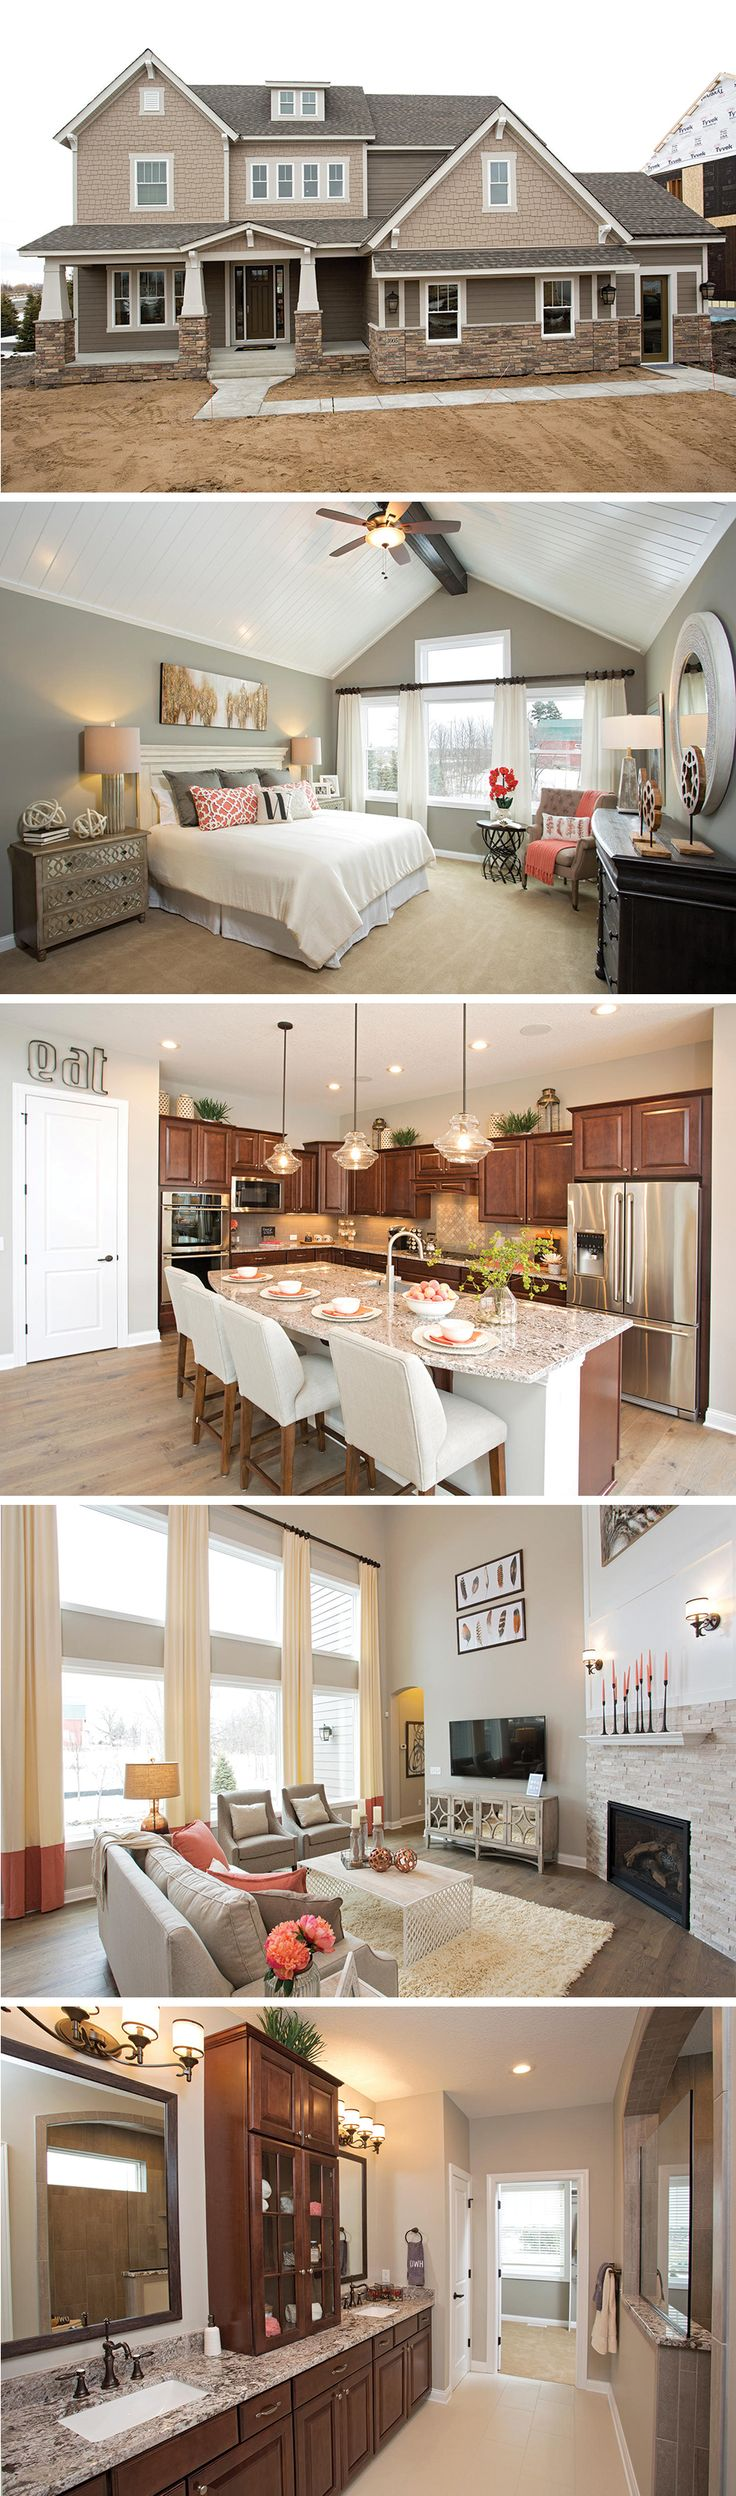 Kitchen And Family Room 17 Best Ideas About Kitchen Family Rooms On Pinterest Open Live